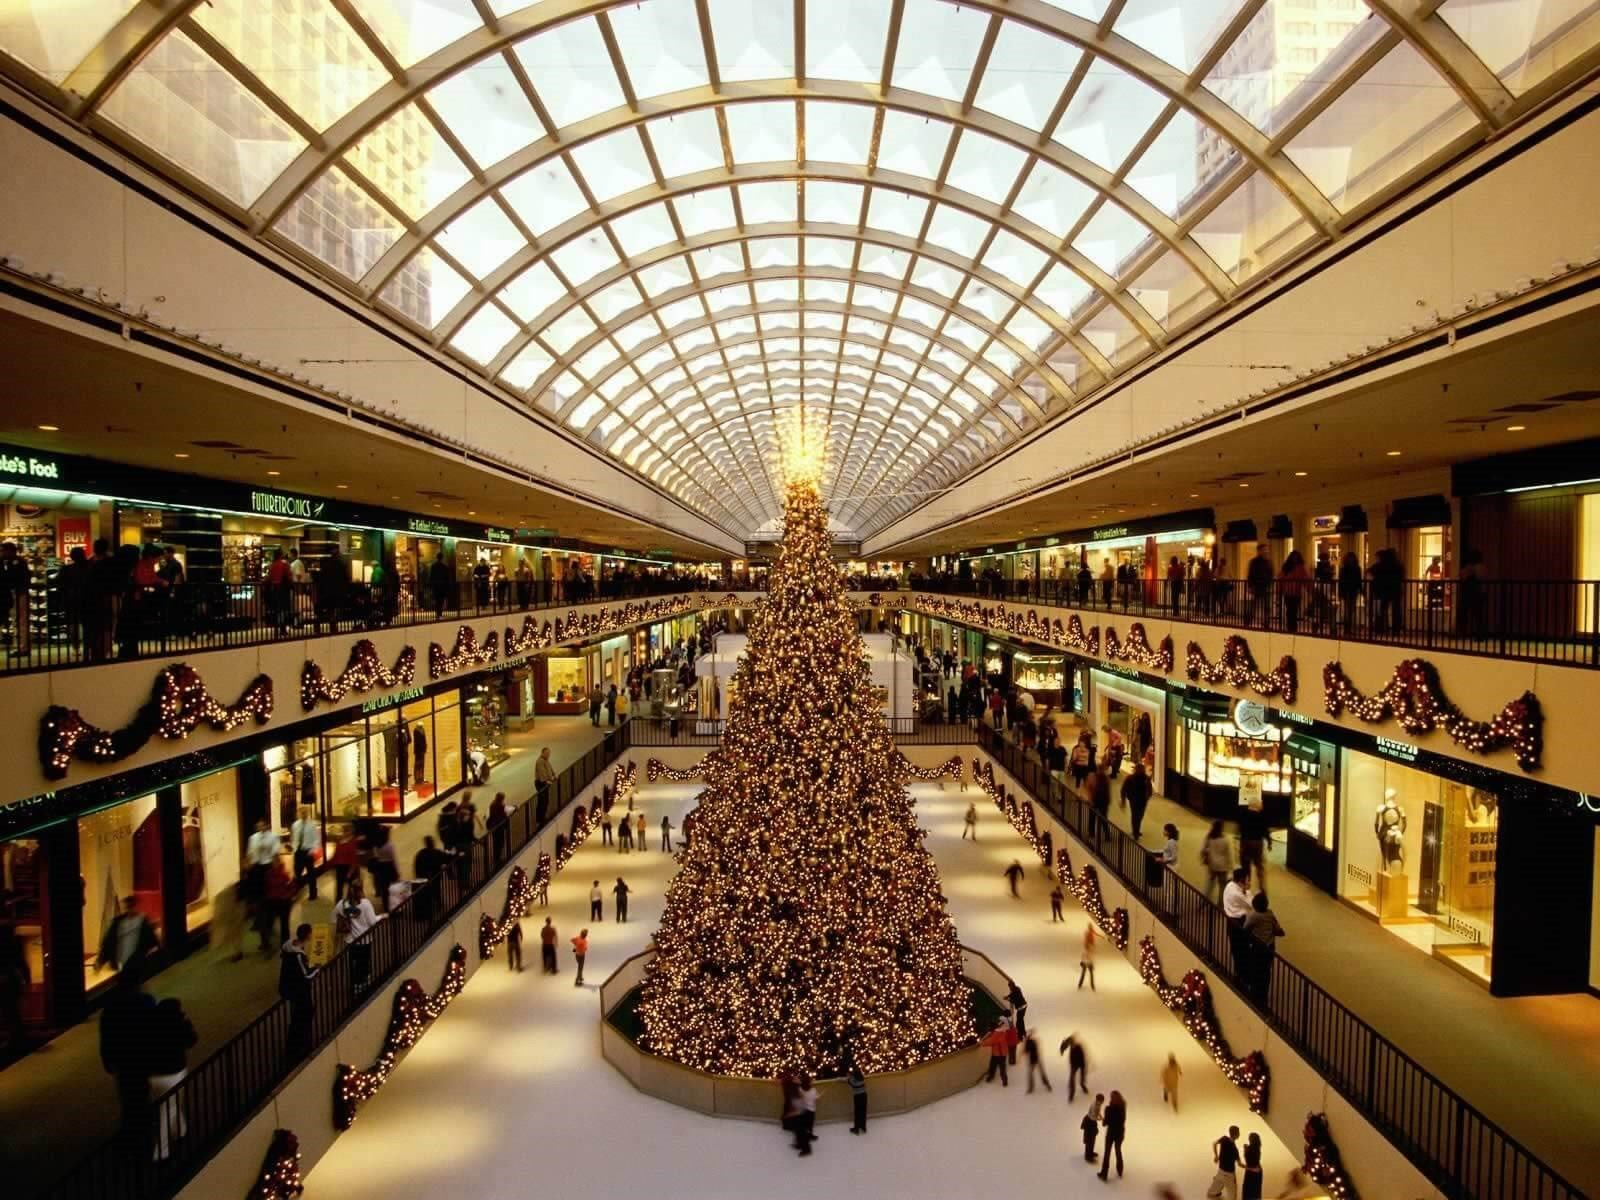 Image of Galleria Mall